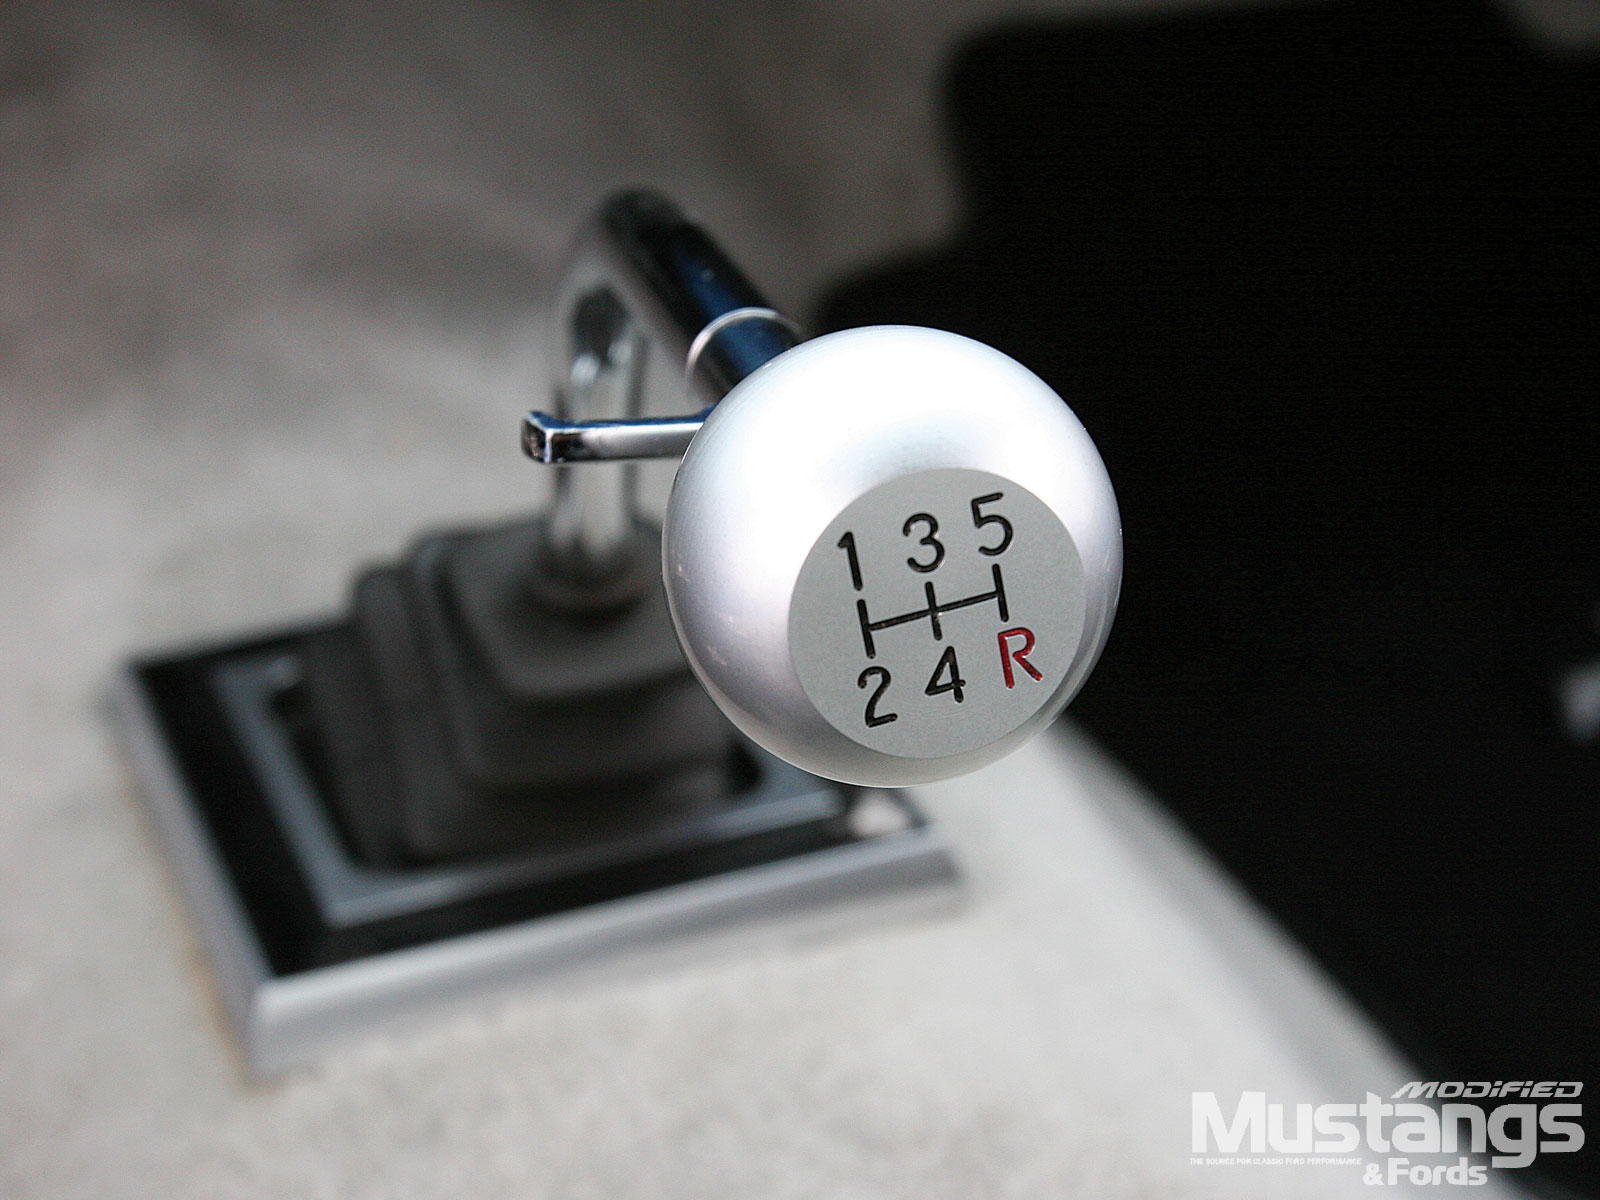 1965 Mustang Fastback Shift Knob